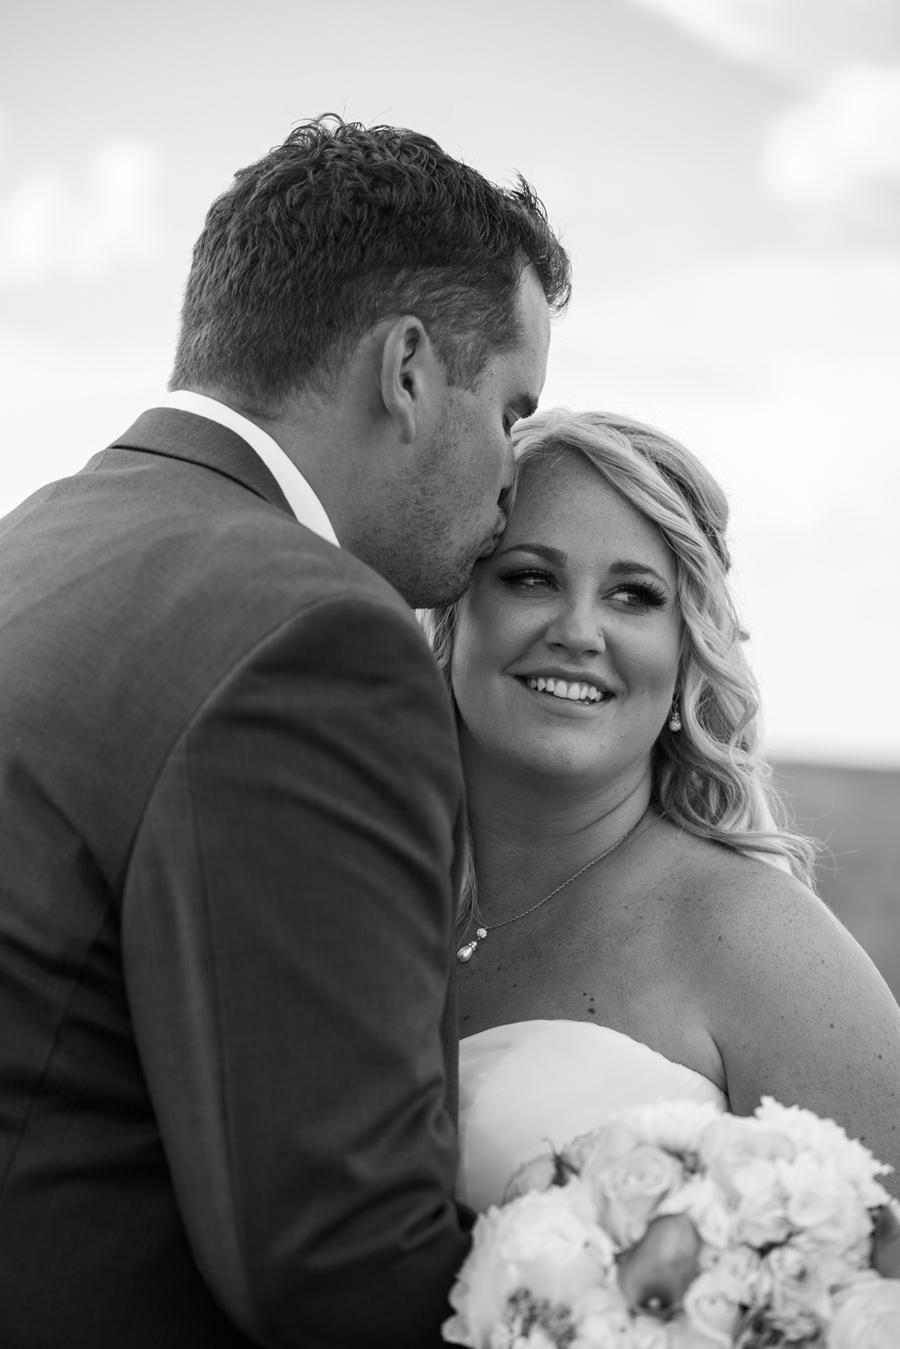 bbcollective_yeg_2016_ashleyandcraig_wedding_photography048.jpg